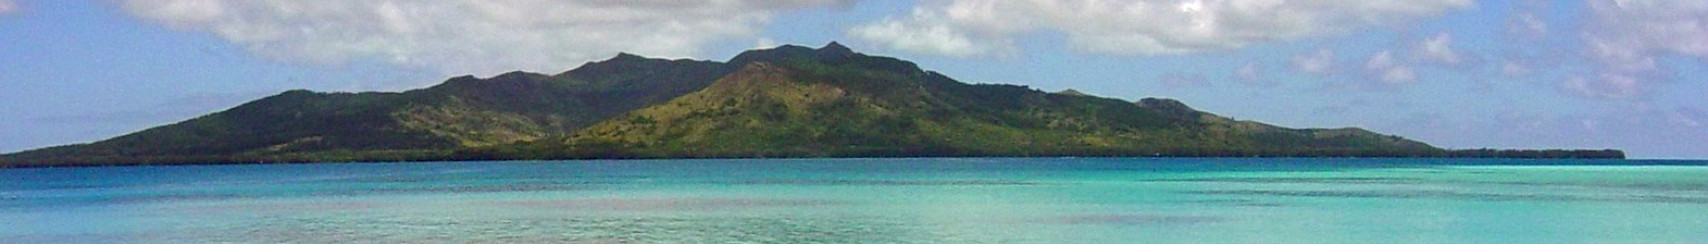 View of Tubuai from a small island